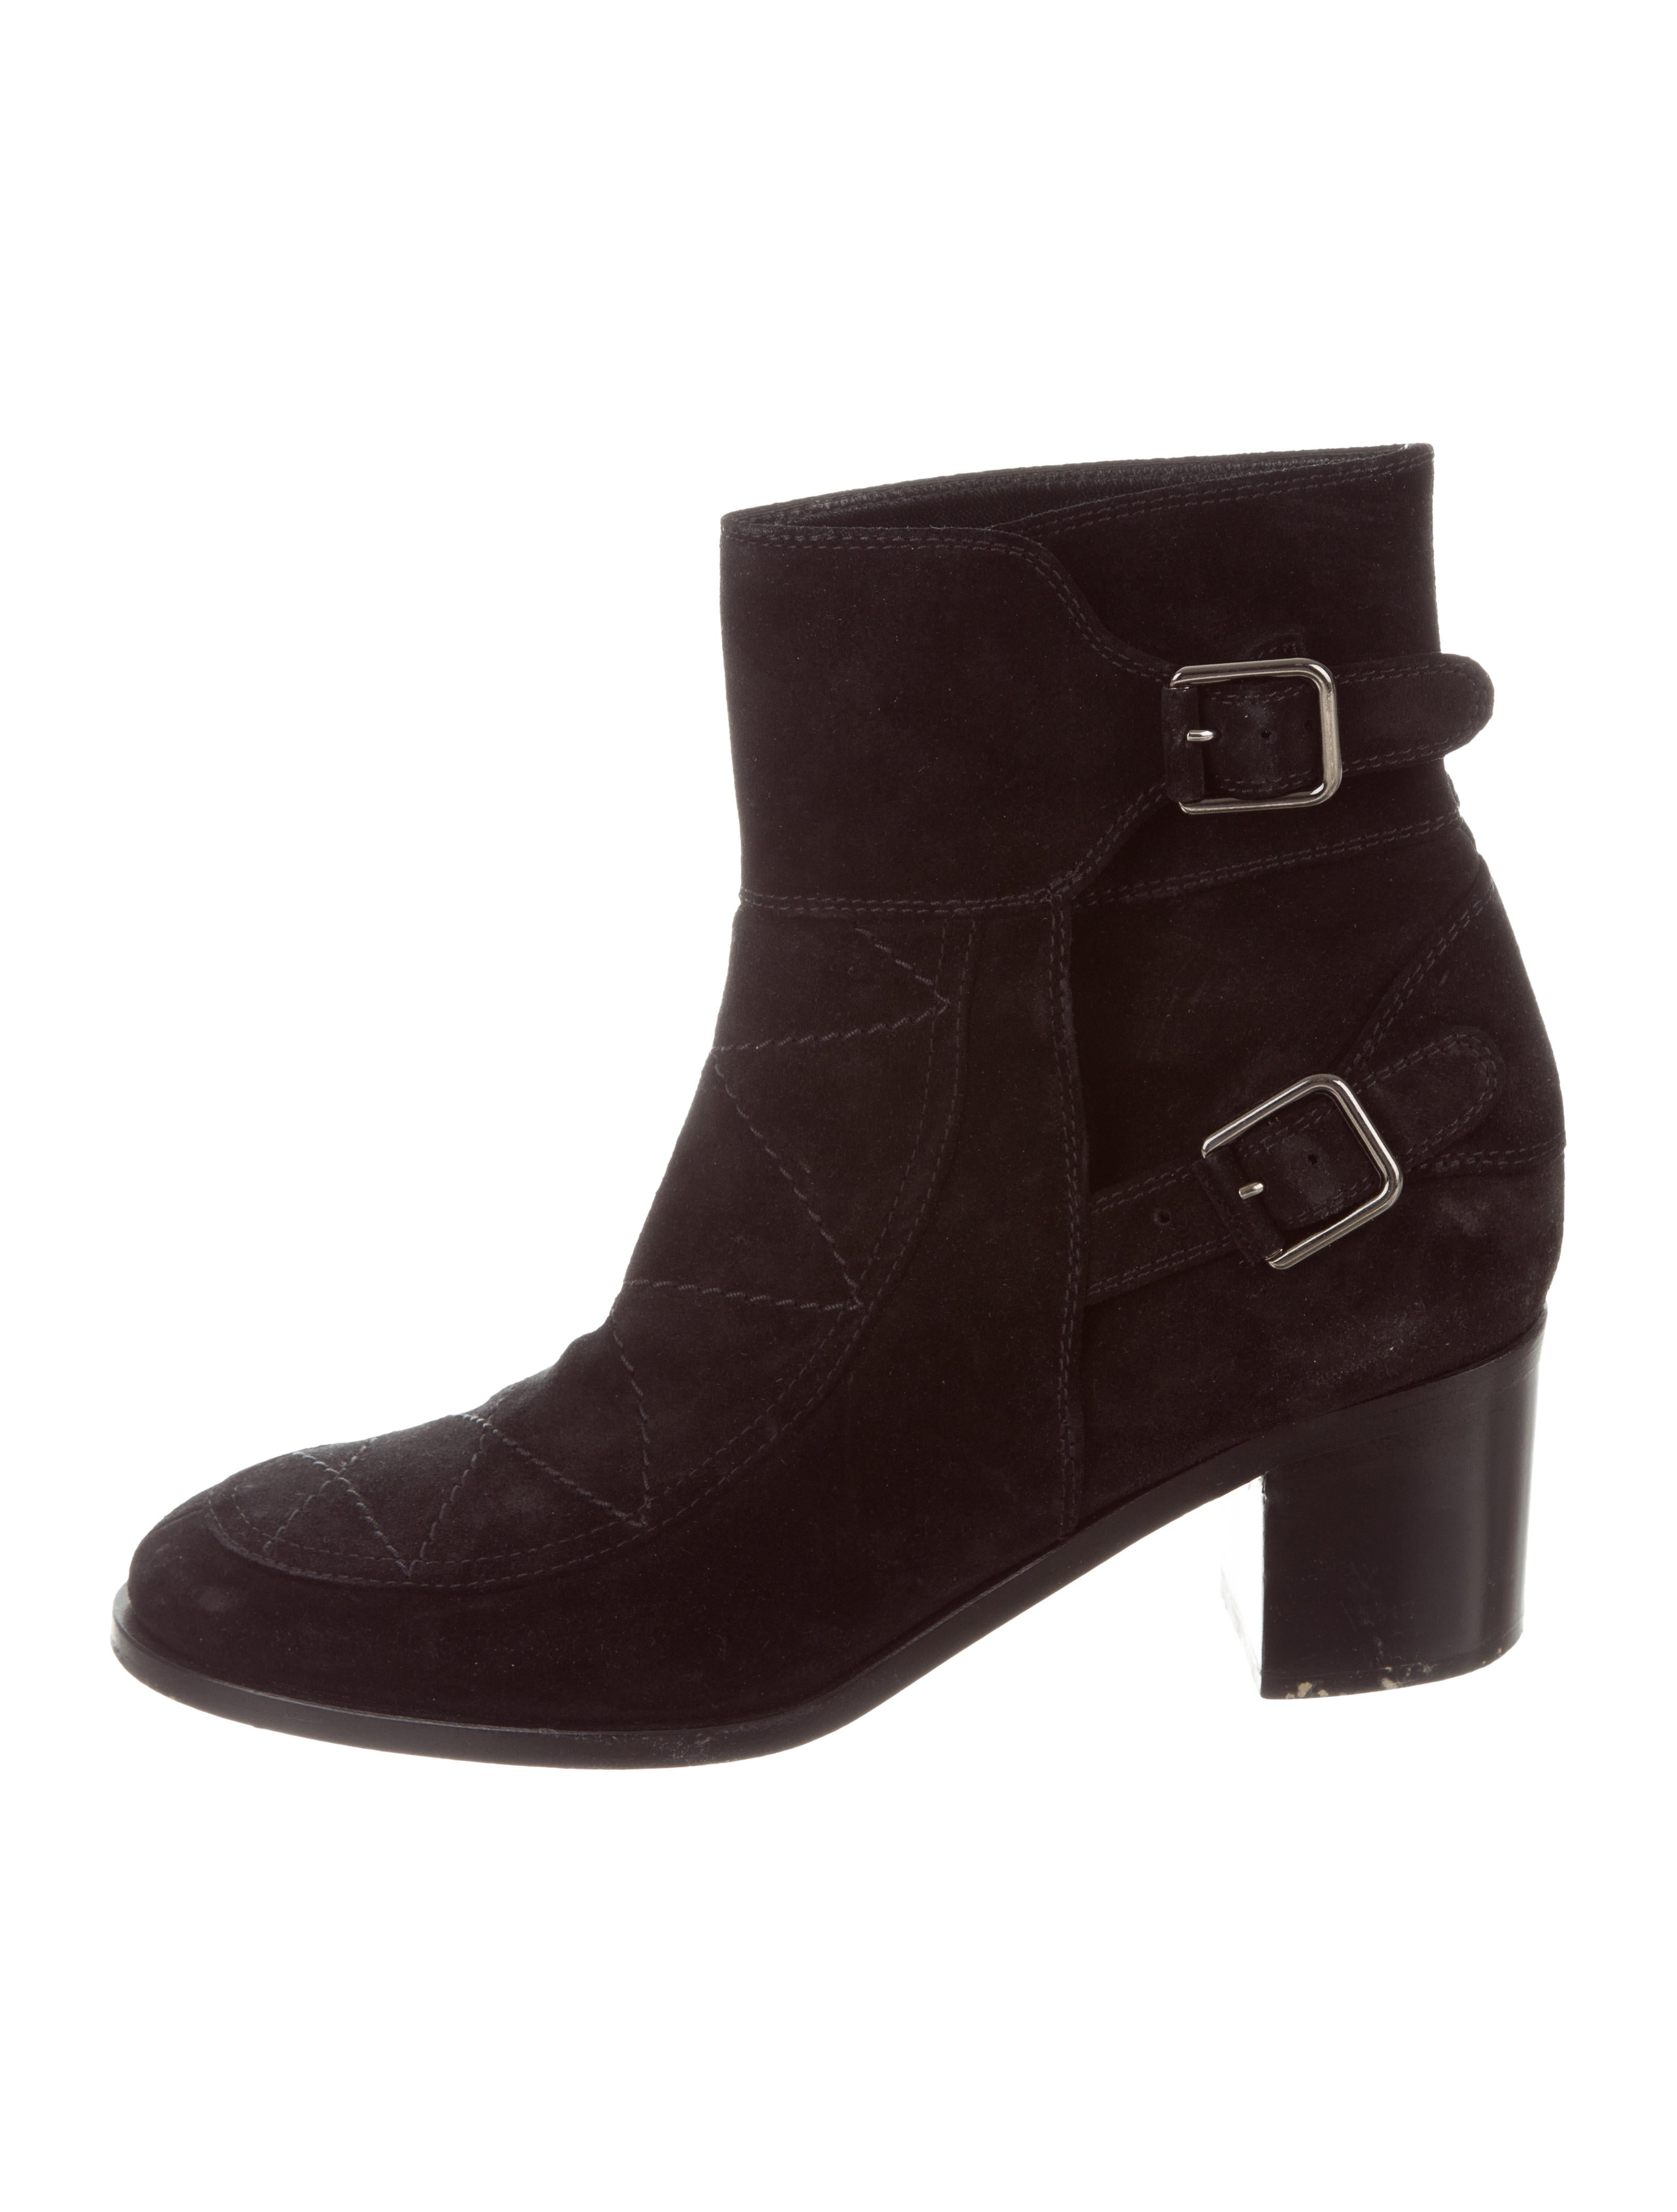 Laurence Dacade Quilted Suede Ankle Boots where can you find sale get to buy official sale online from china free shipping low price 1jlzq